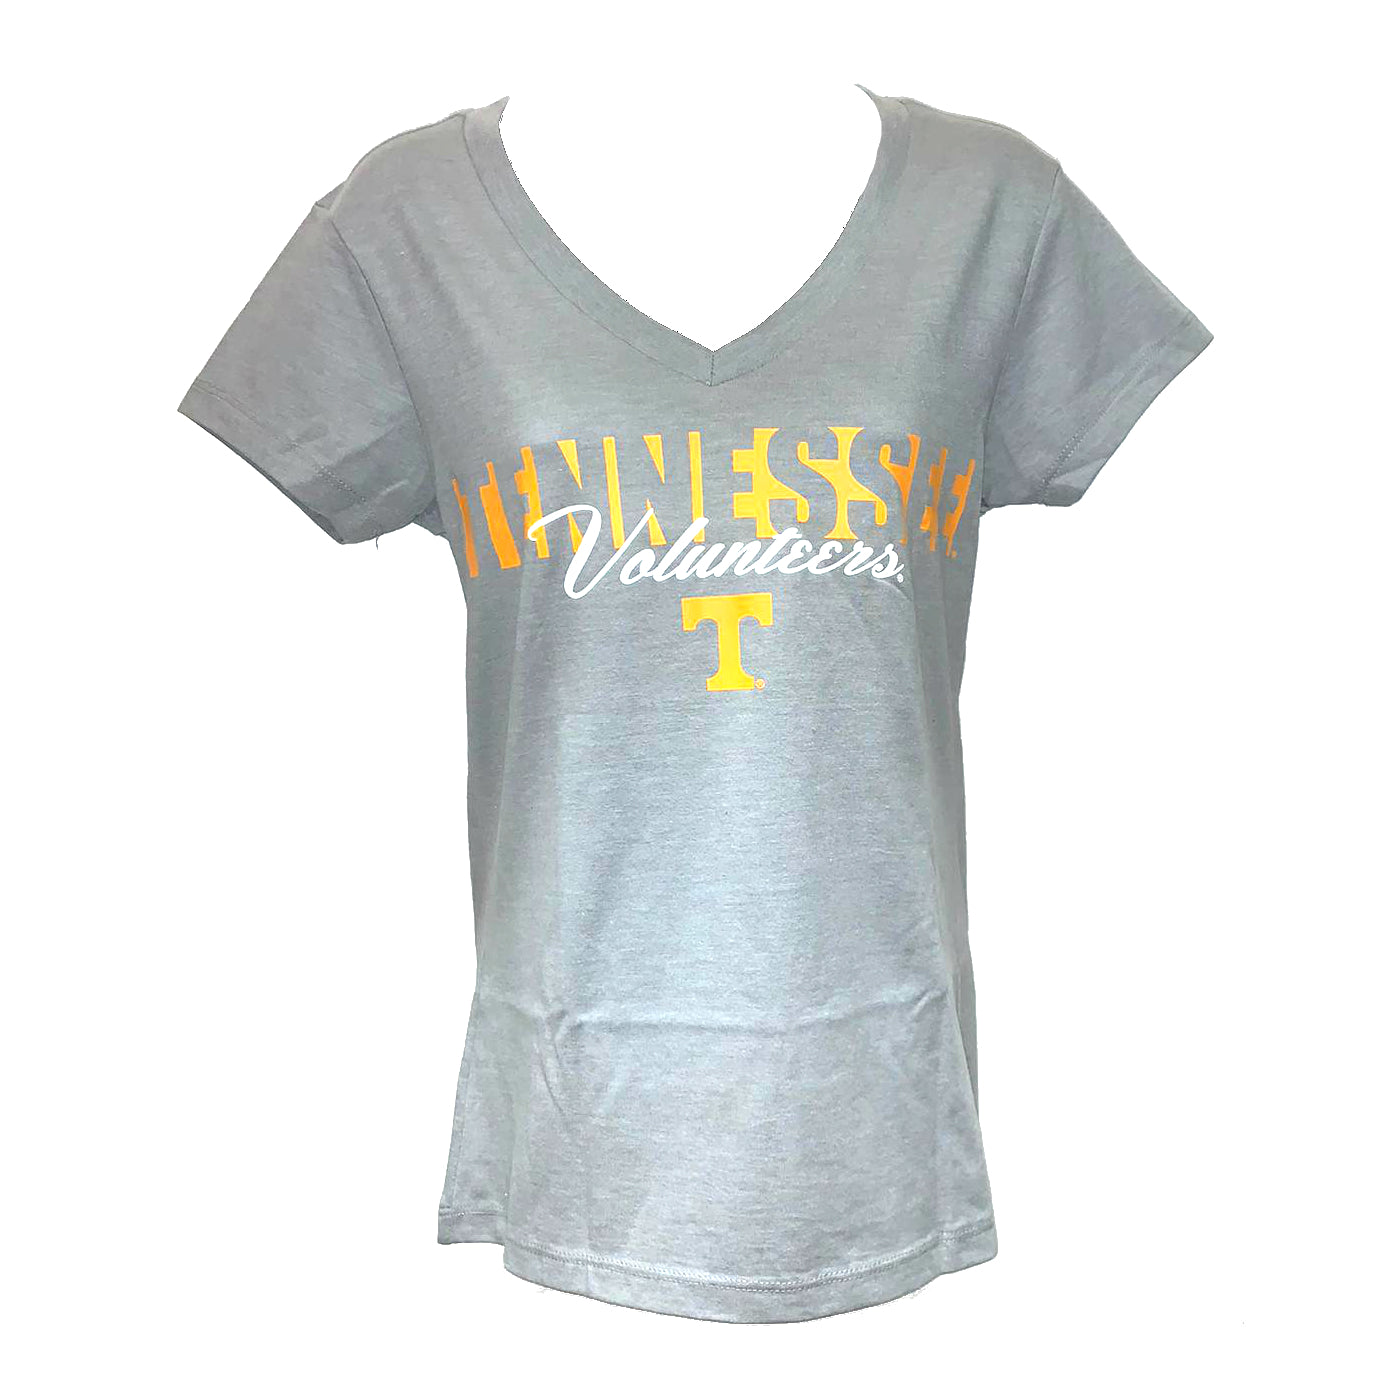 Tennessee Volunteers Women's A League Of Their Own T-Shirt